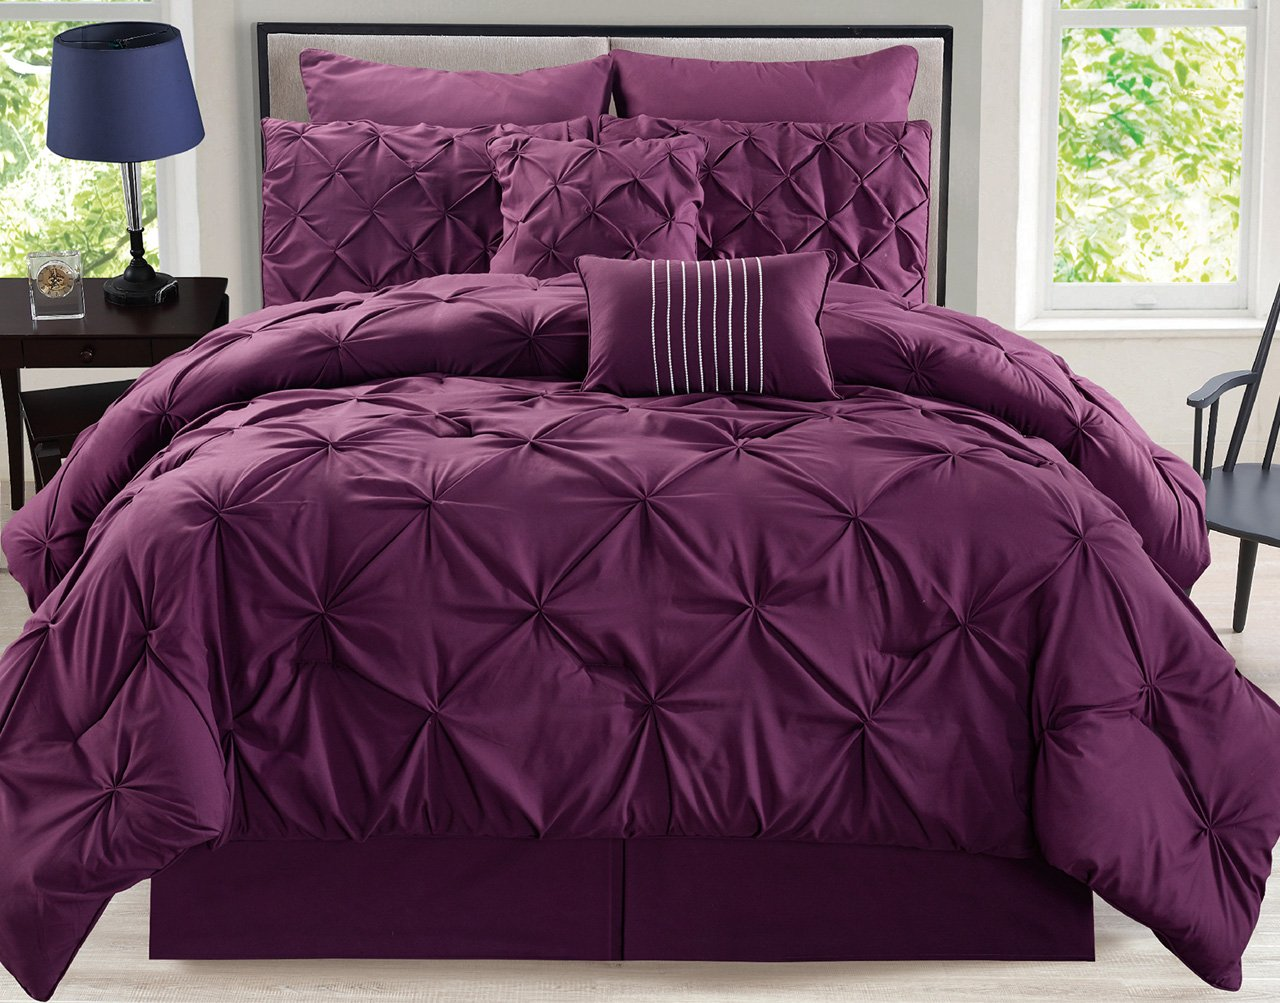 Amazon Bedding Ease Bedding With Style